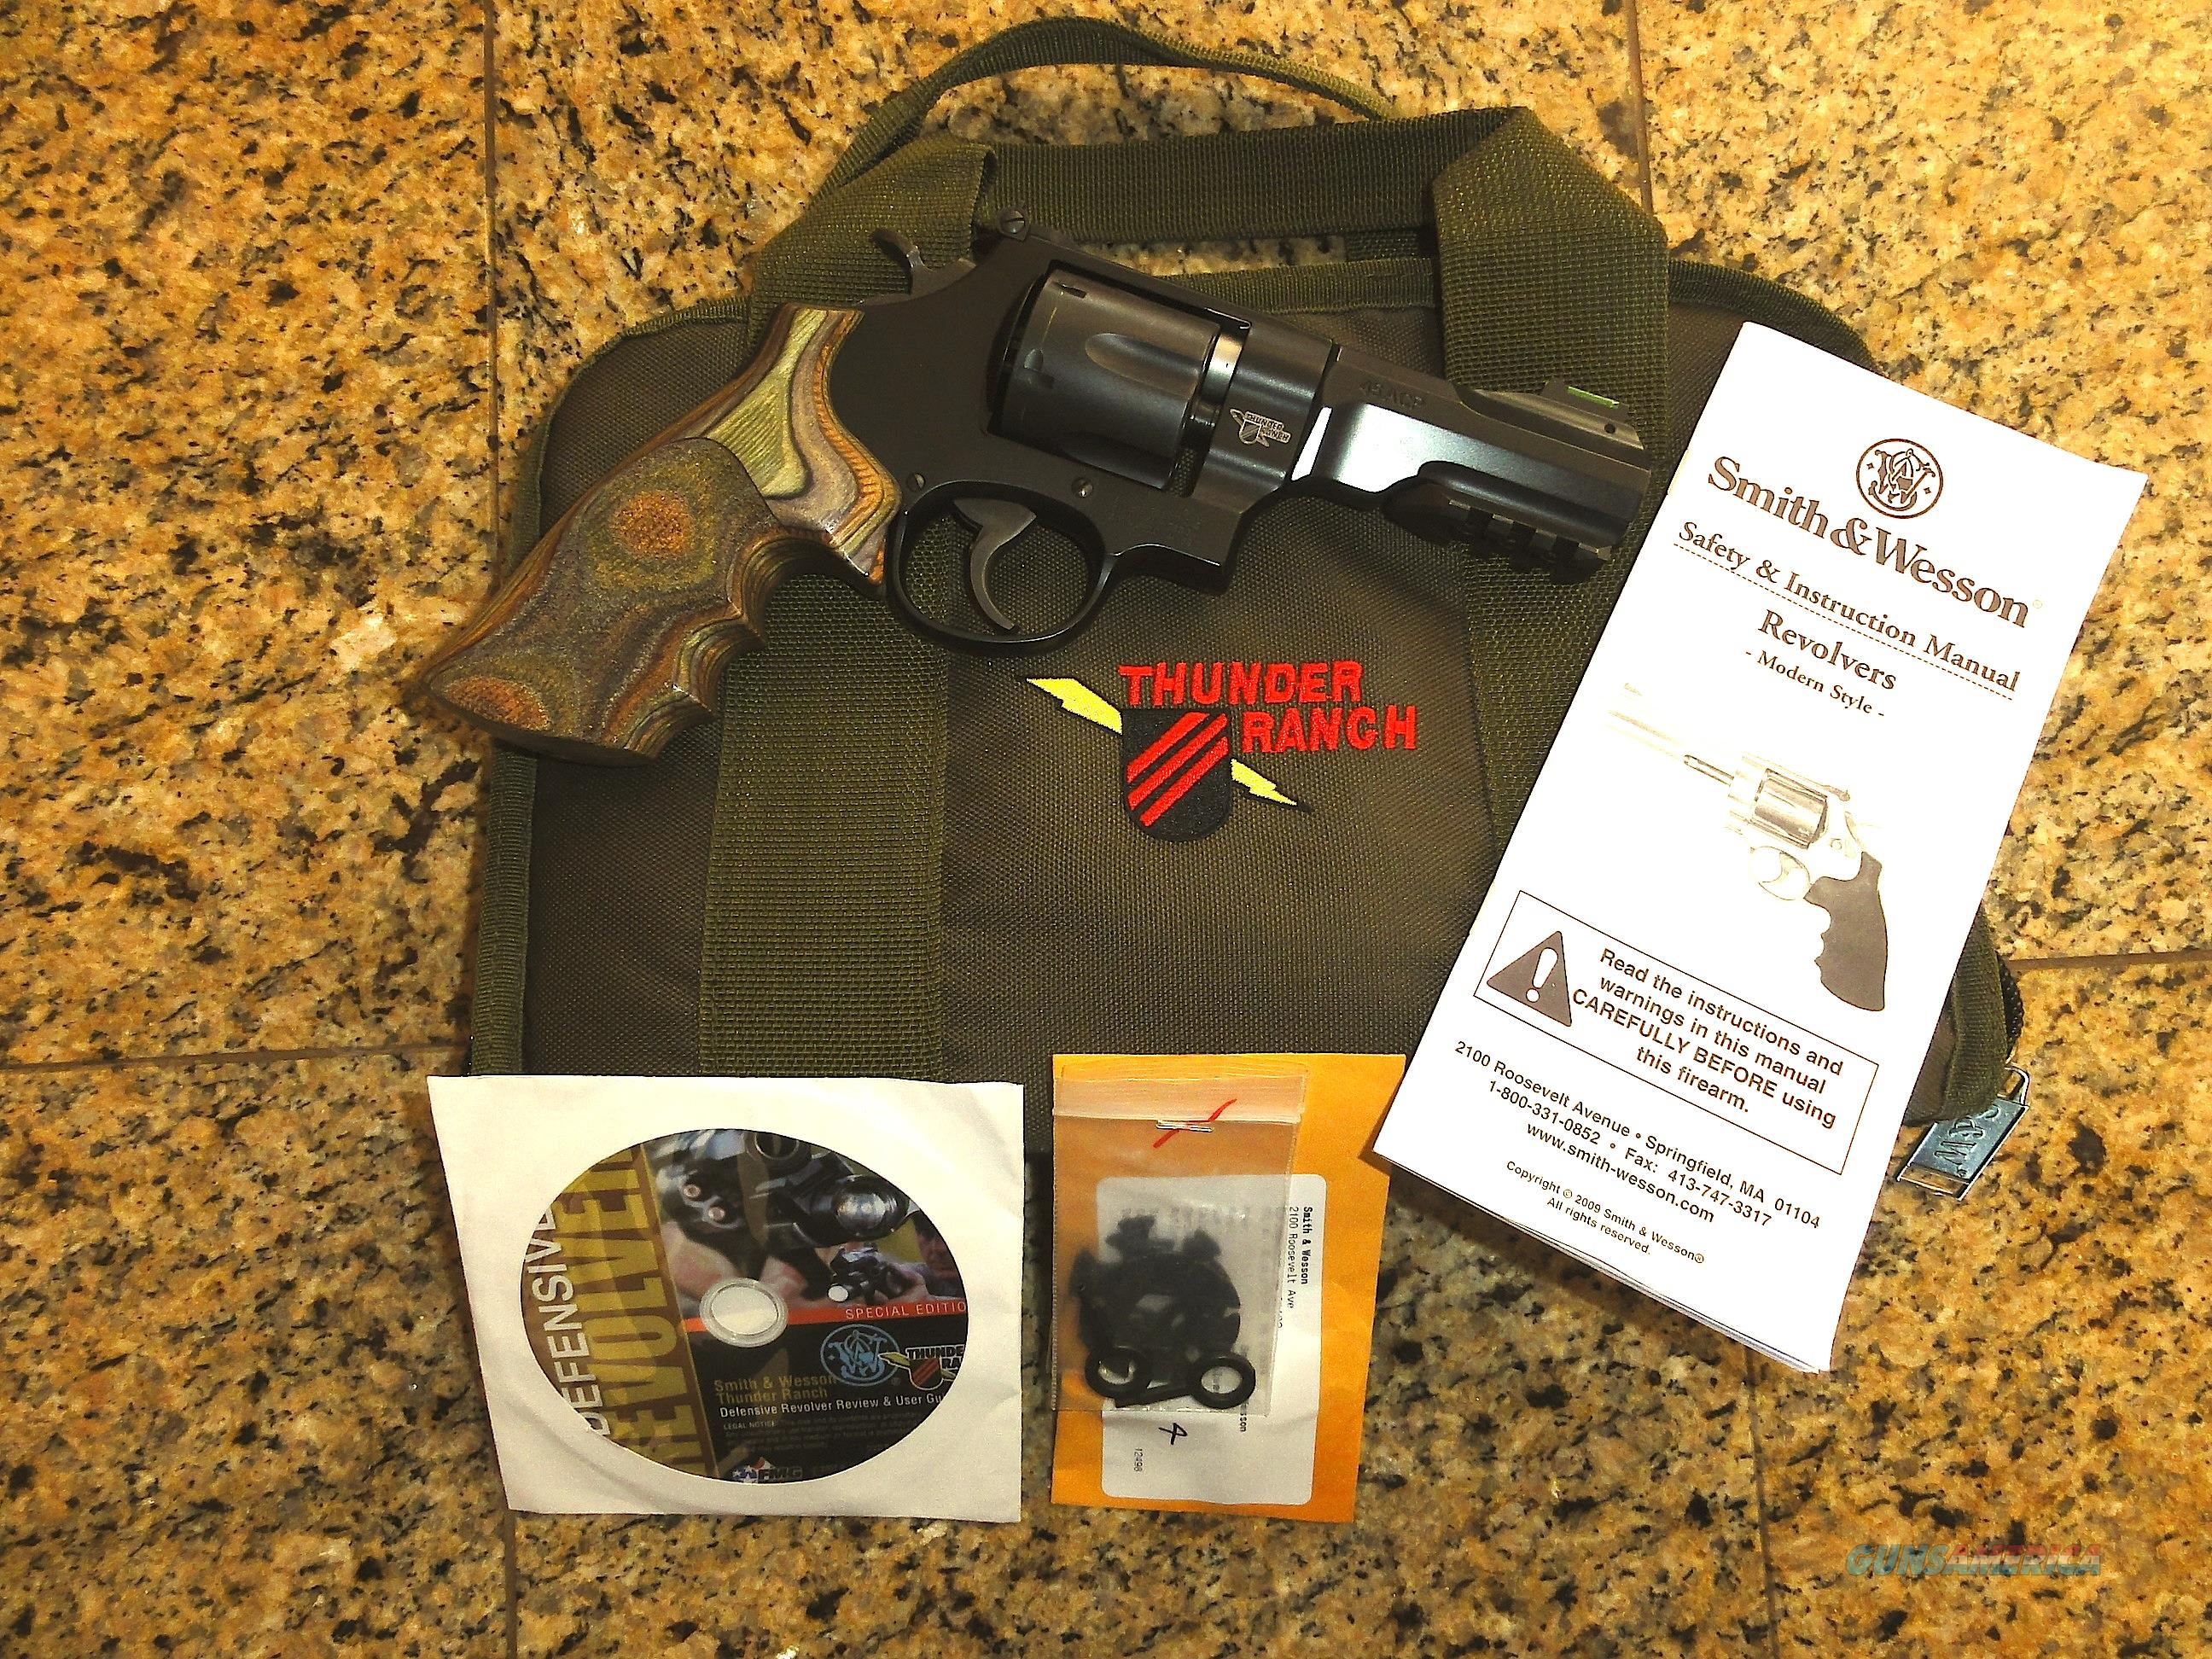 SMITH & WESSON 325 THUNDER RANCH  45 ACP PERFORMANCE CENTER TACTICAL  REVOLVER NEW!!